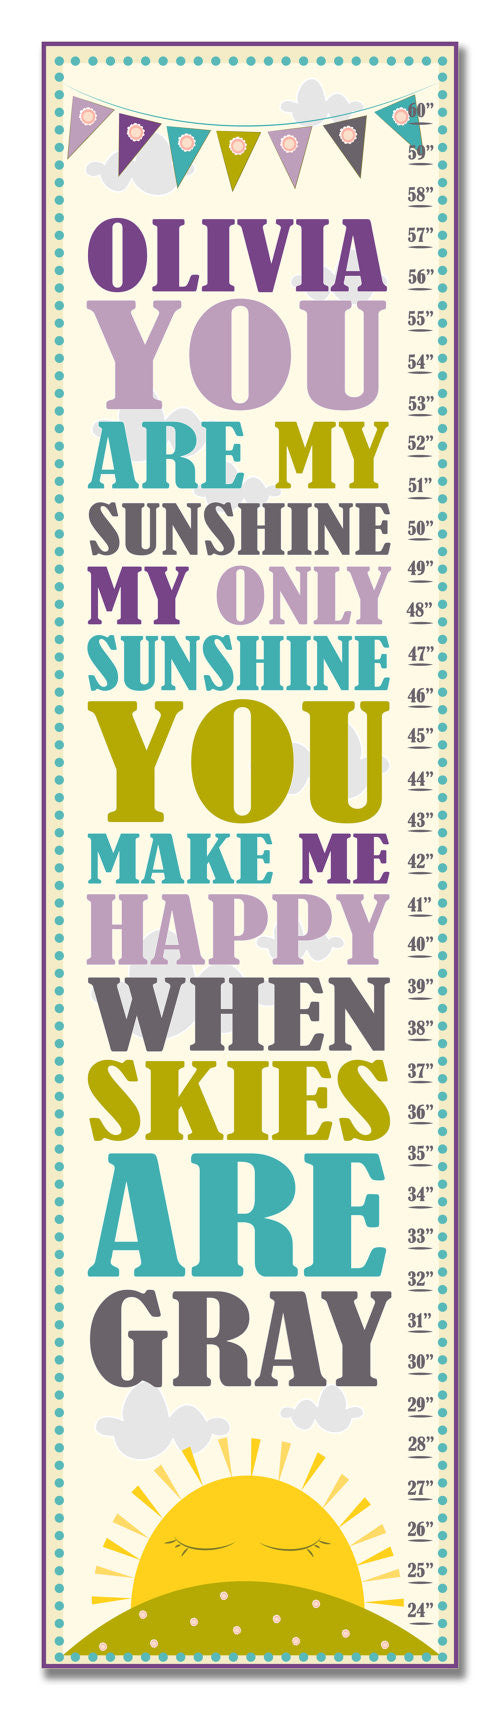 My Sunshine Personalized Growth Chart - Purple